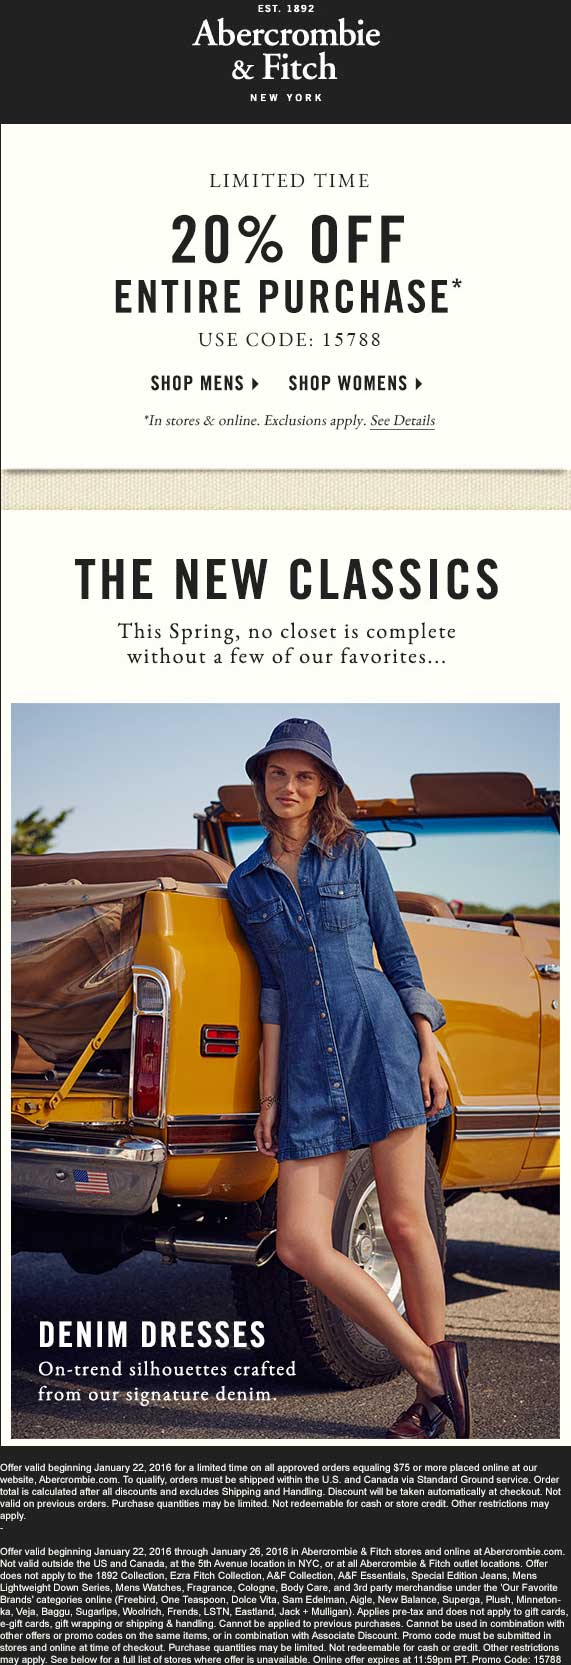 Abercrombie & Fitch Coupon July 2018 20% off at Abercrombie & Fitch, or online via promo code 15788